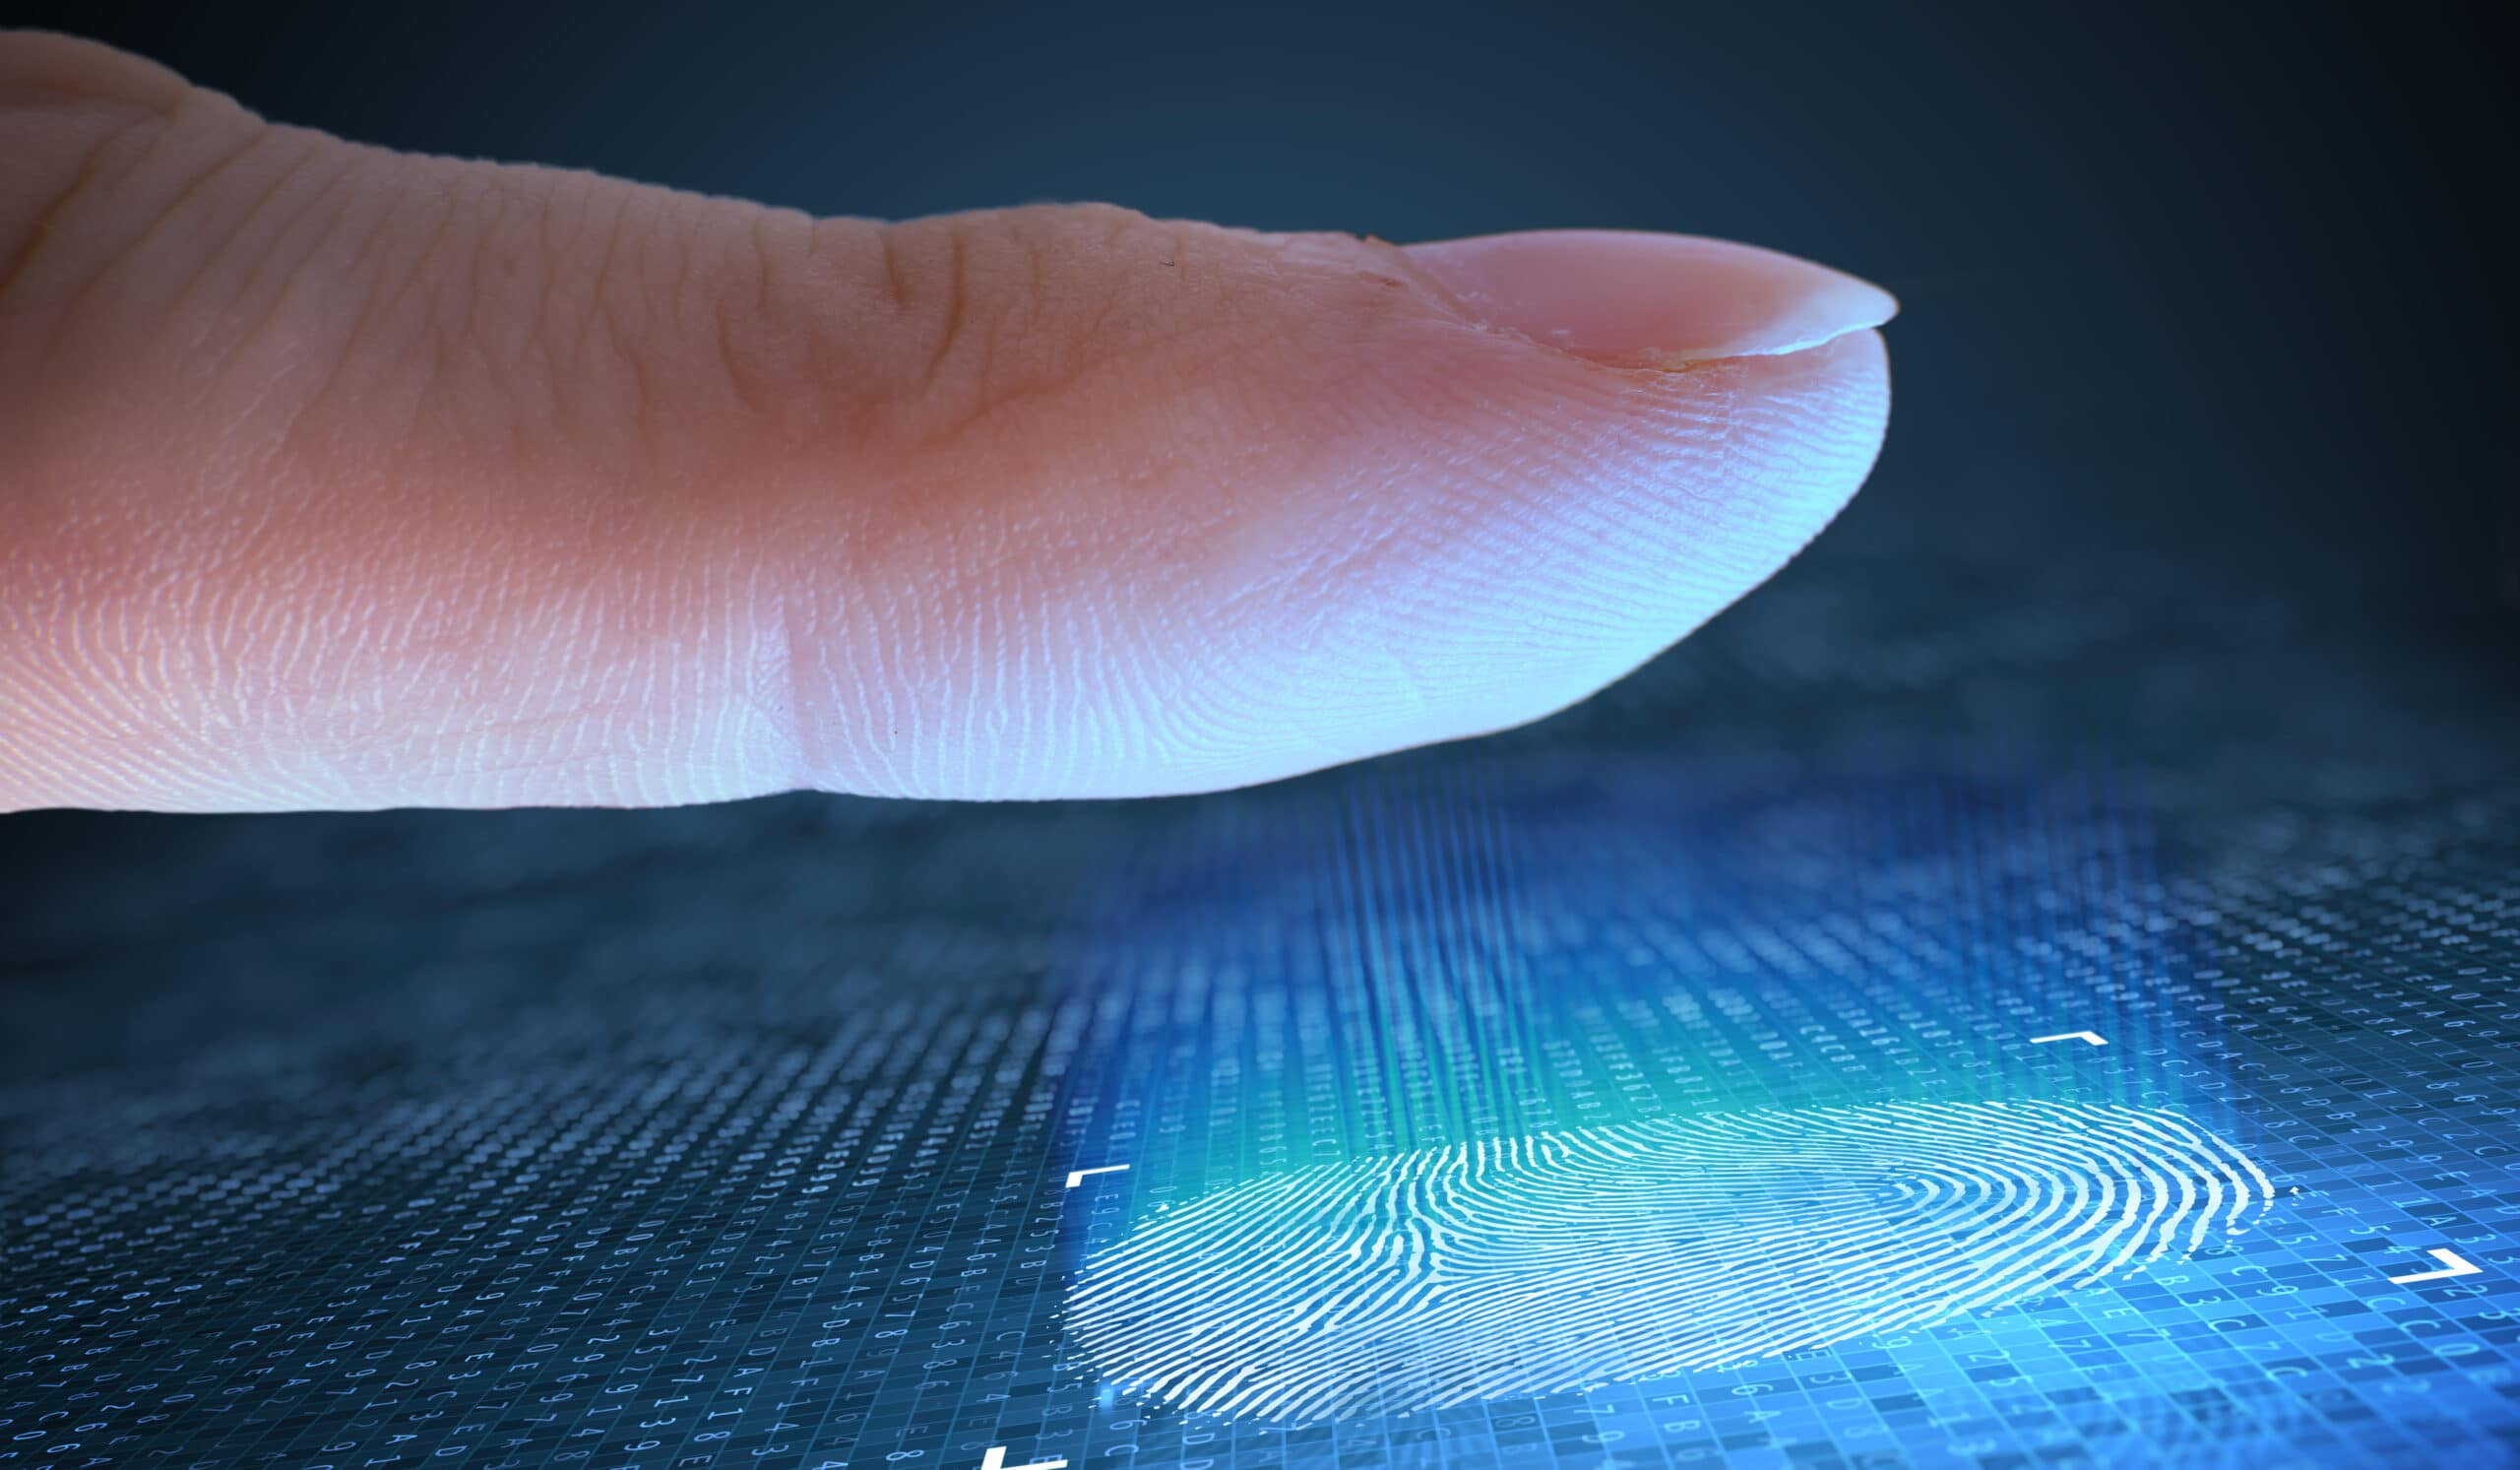 Looking to Start an Electronic Fingerprinting Business in the State of Florida?